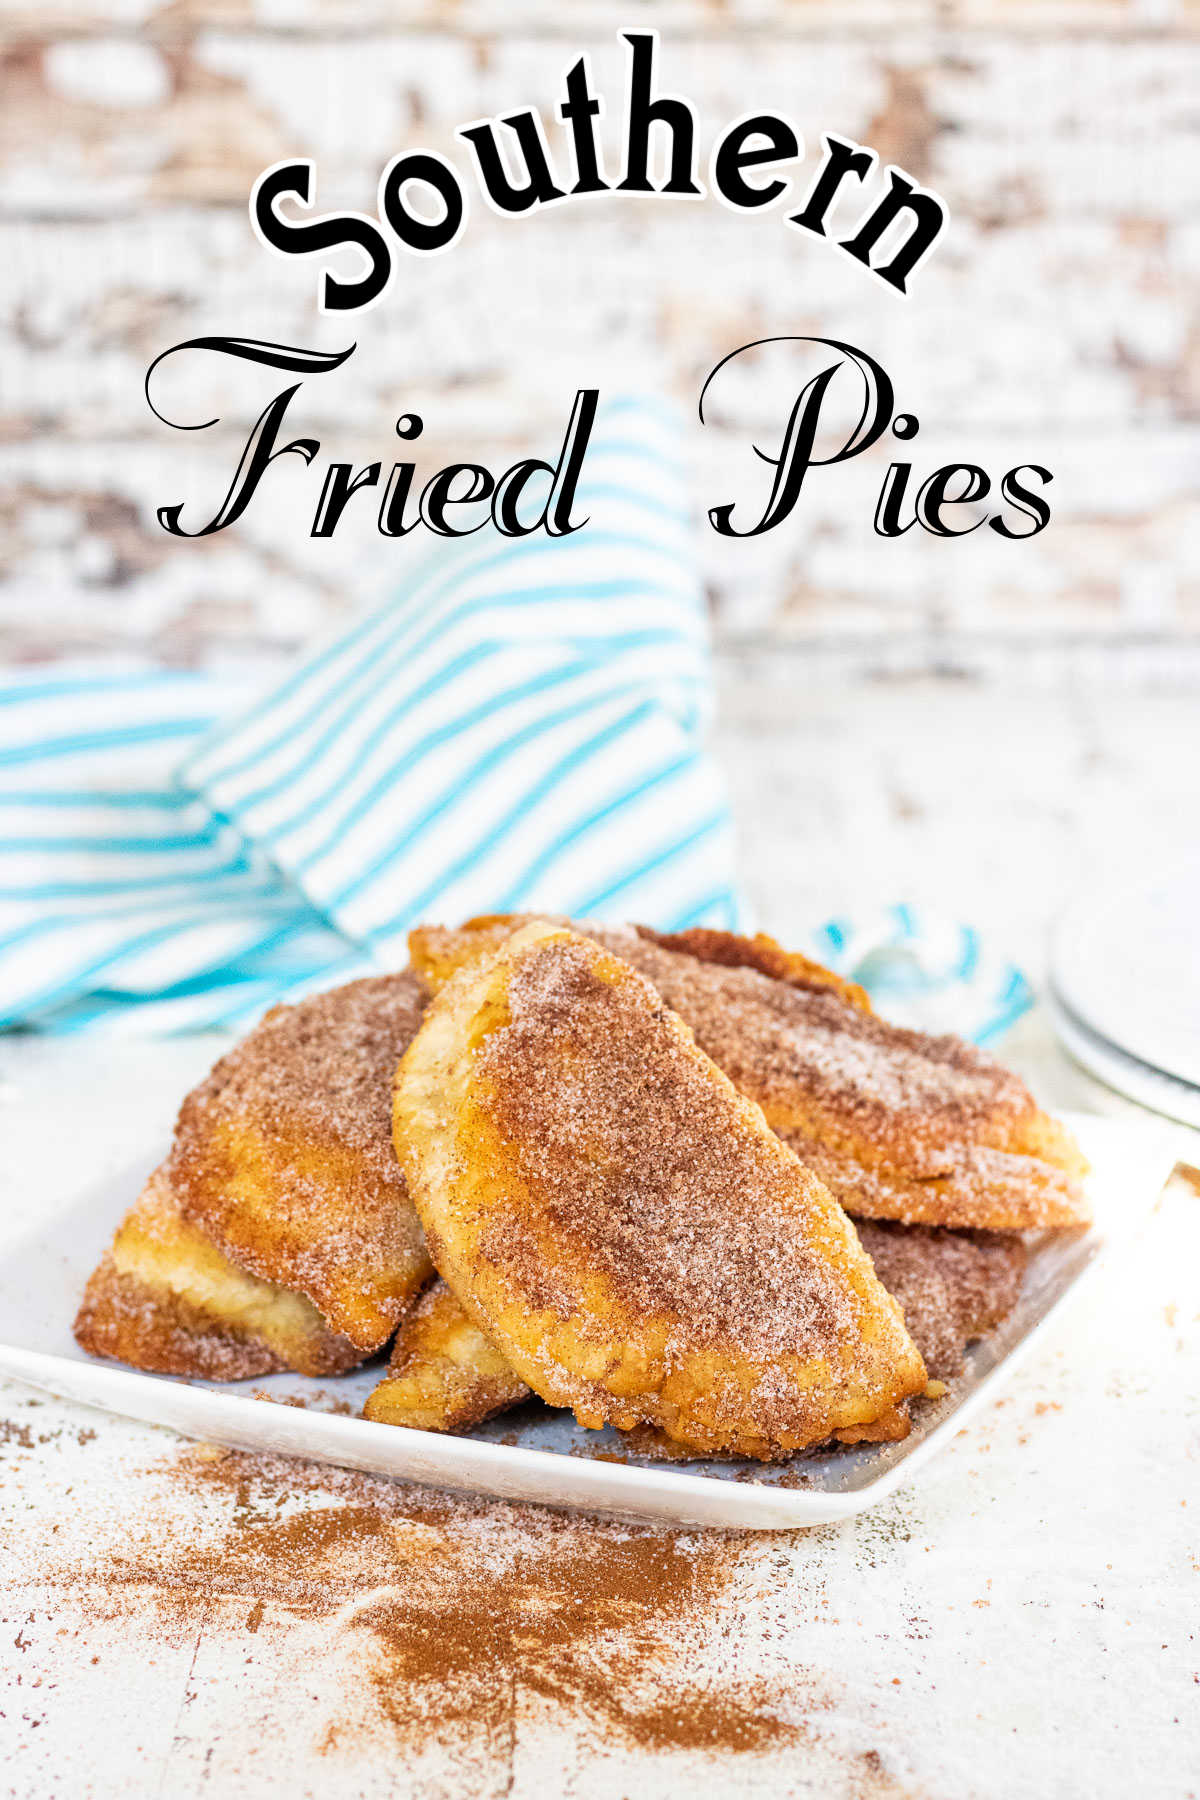 Plate of fried pies with title text overlay.